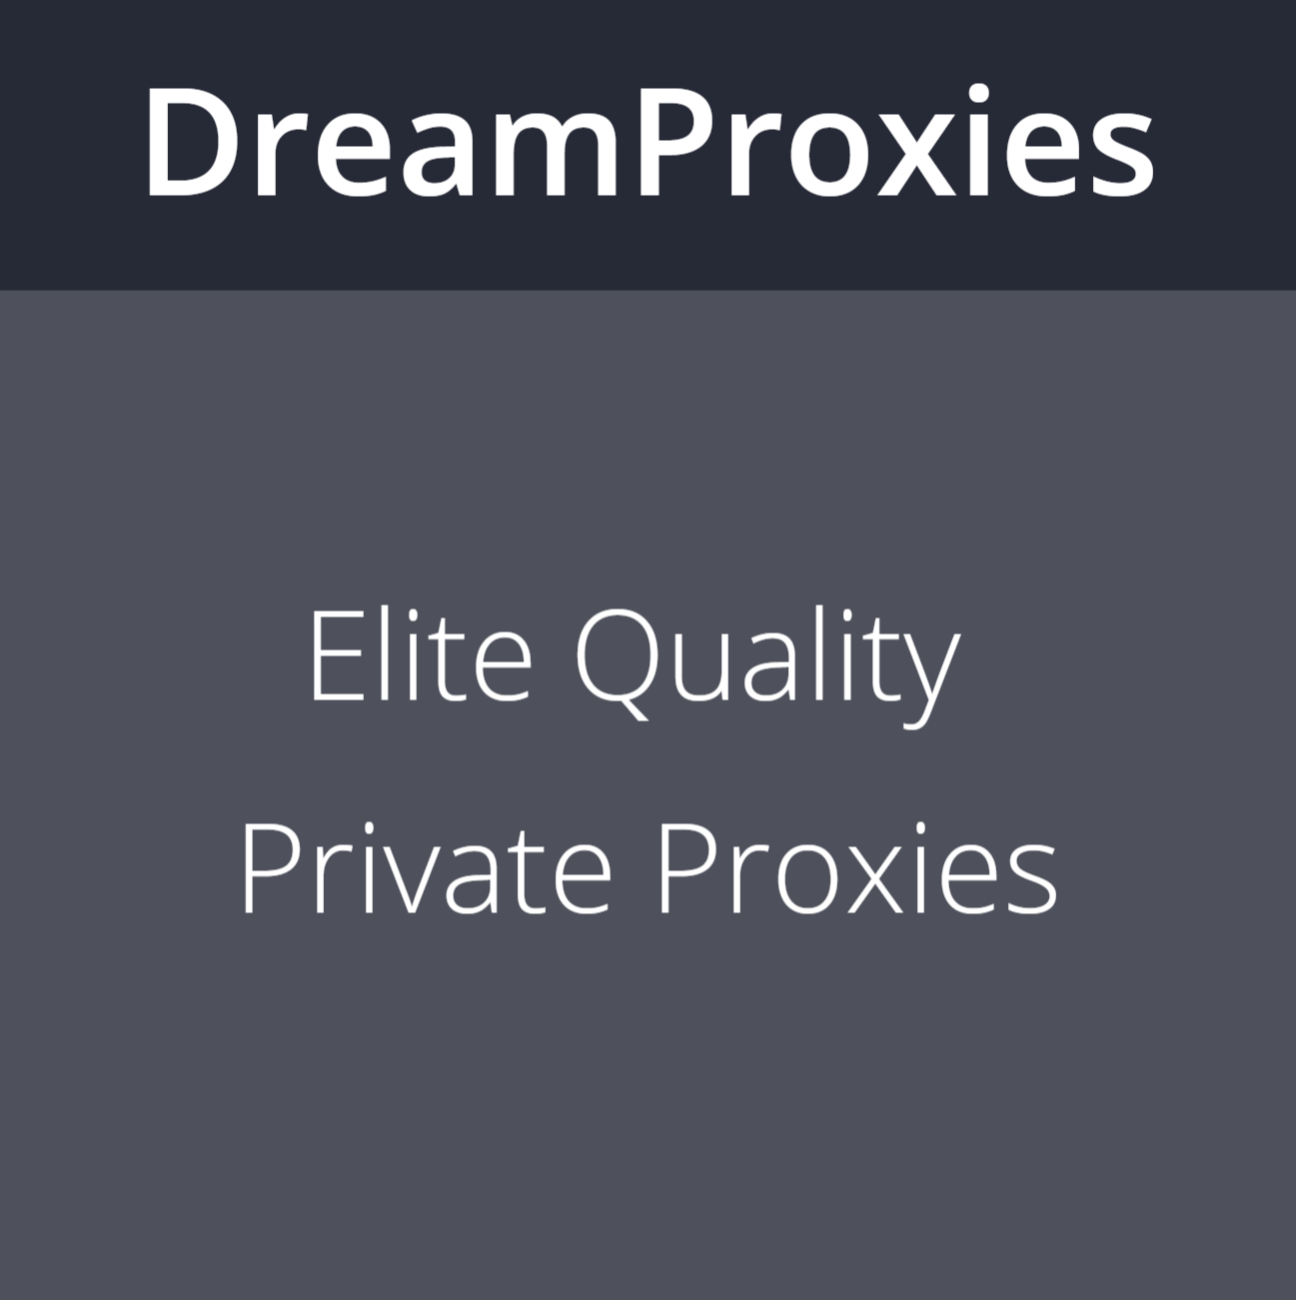 dreamproxies img2